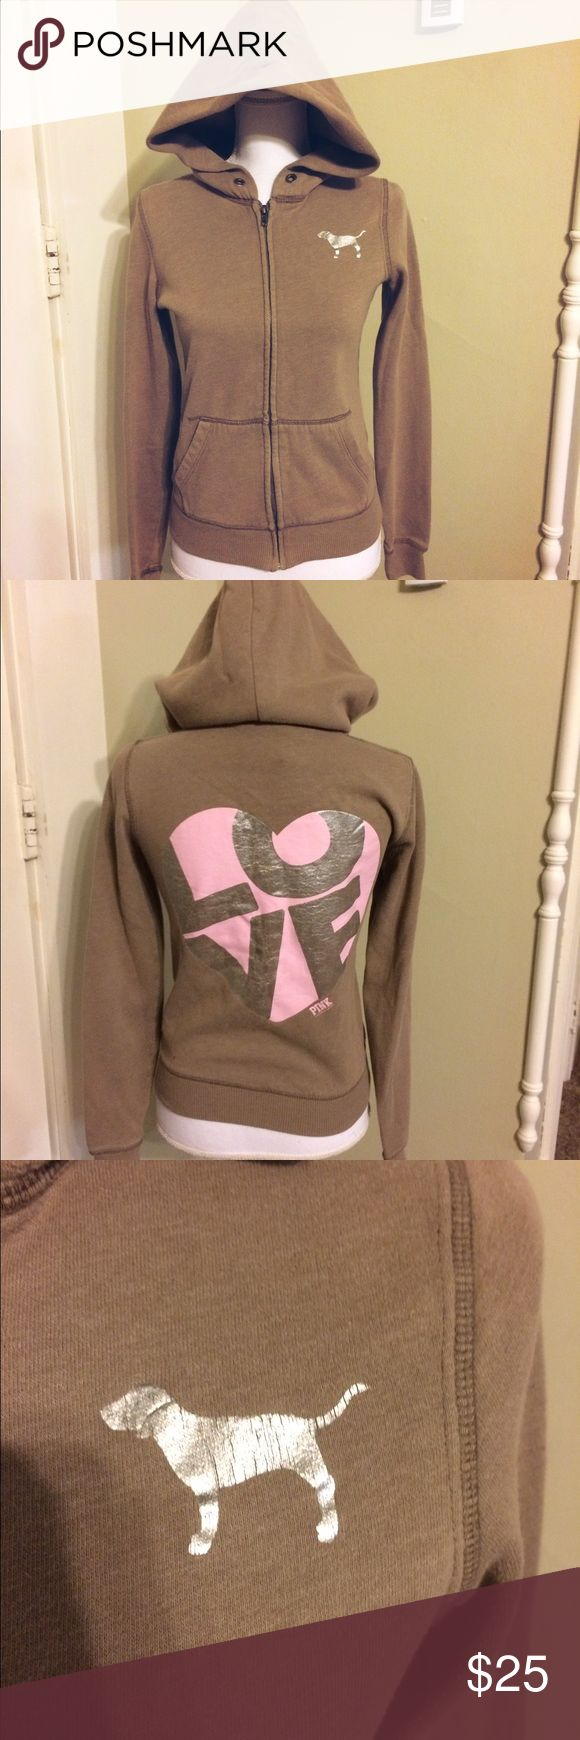 "PINK Victoria's Secret light brown zip up hoodie PINK Victoria's Secret light brown zip up hoodie with silver PINK dog & pink ""love"" on the back in a heart. Size x-small, approximate flat measurements: length 22"" width 16"". PINK Victoria's Secret Tops Sweatshirts & Hoodies"